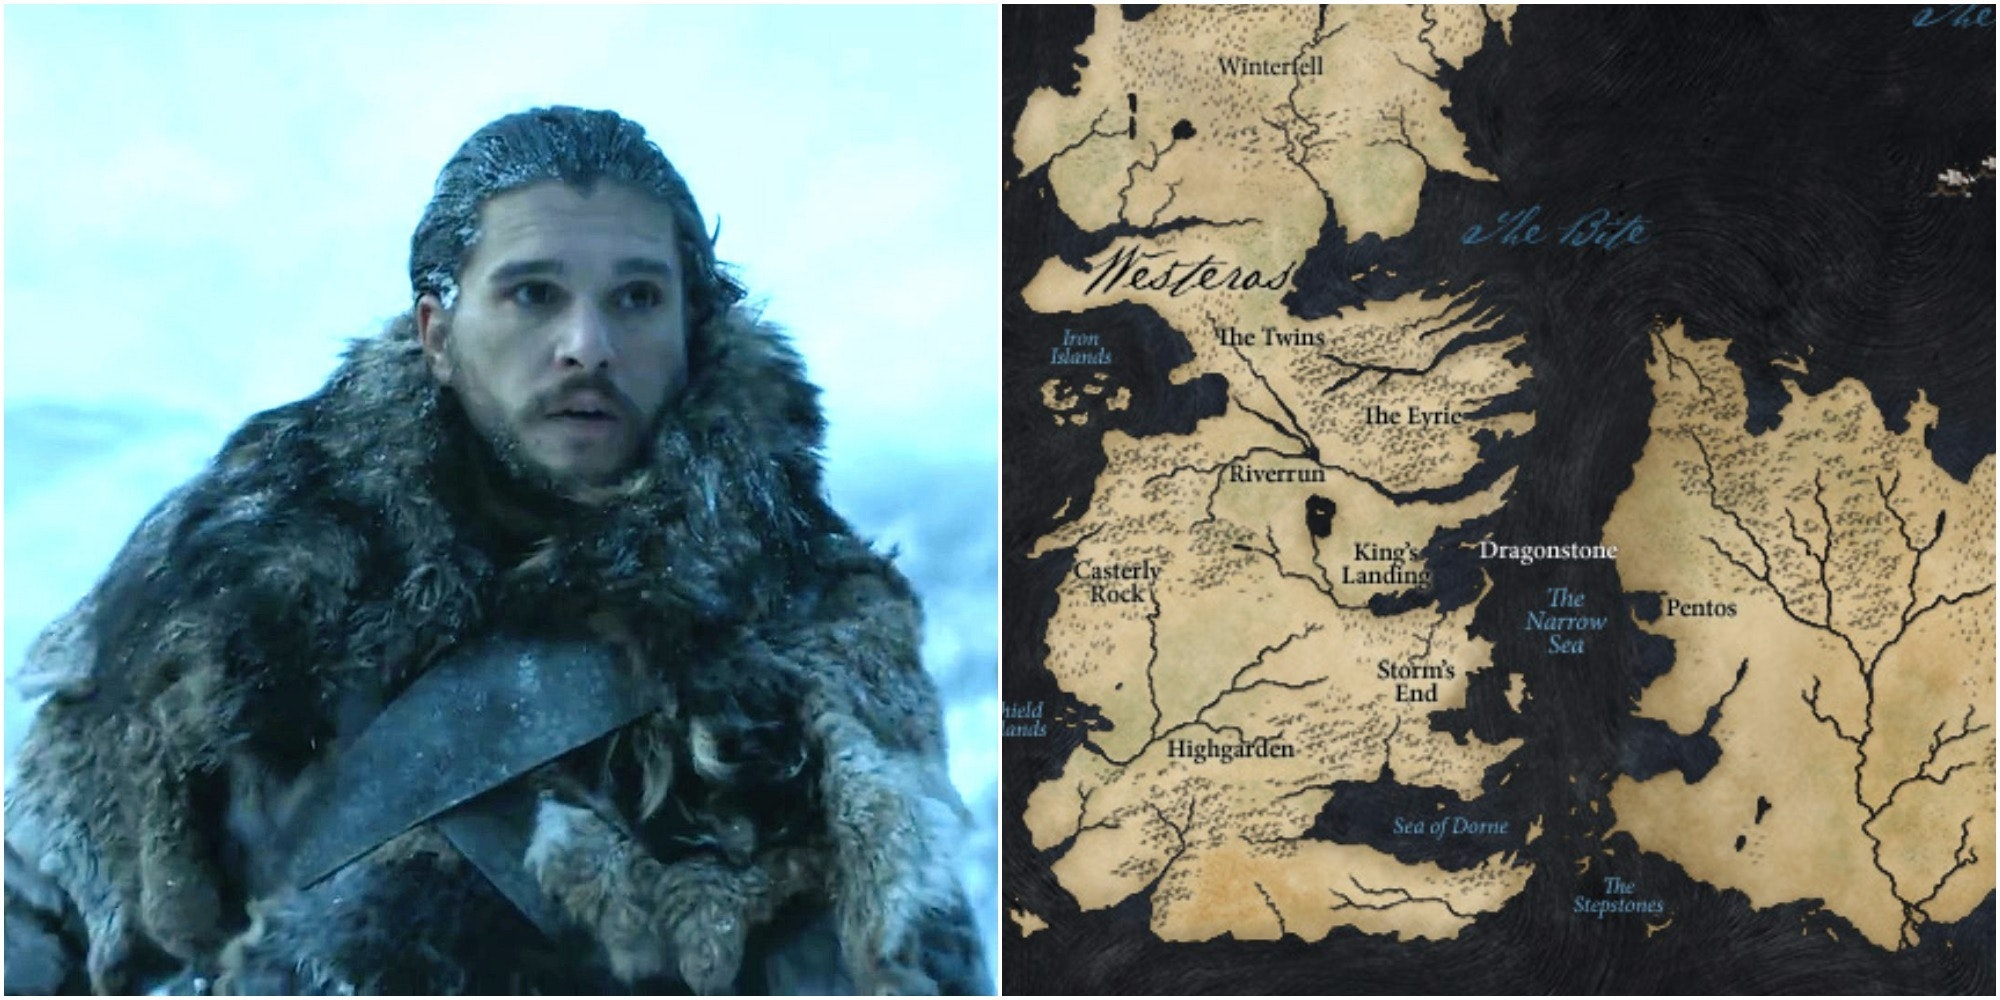 Wild Game Of Thrones Theory Connects Westeros And Essos On A Map